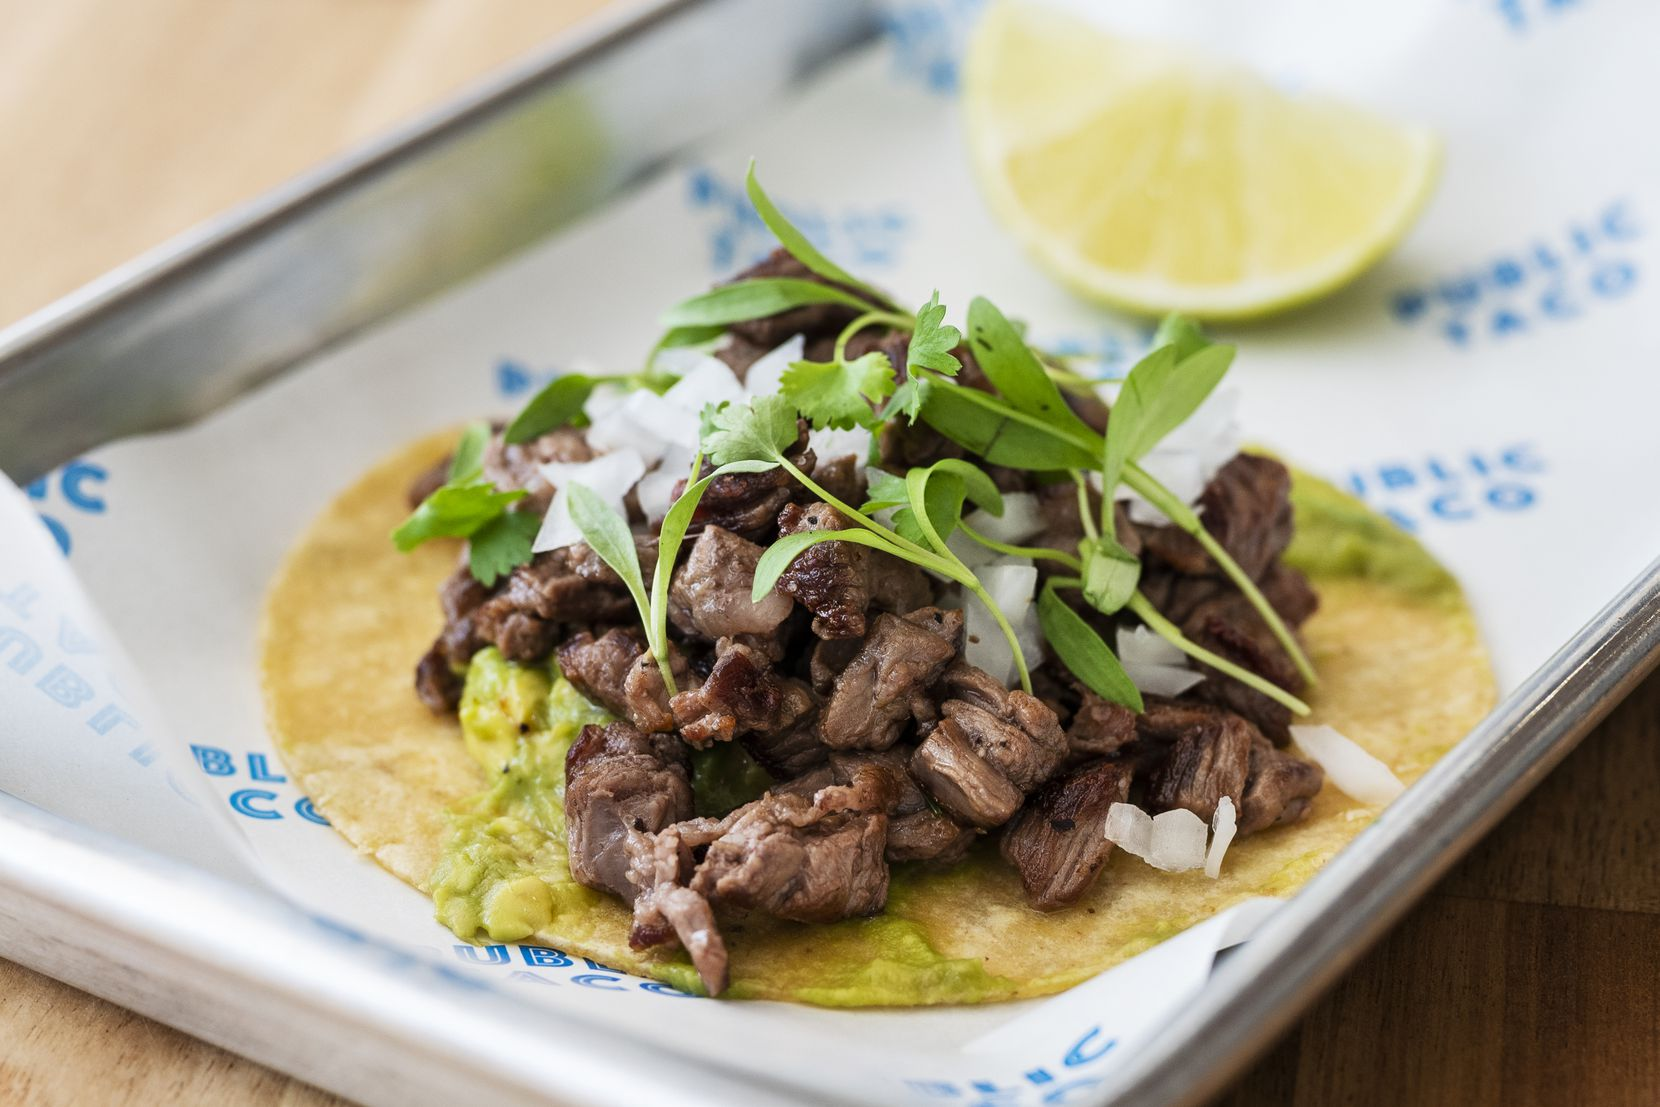 One of chef Juan Ascanio's favorite menu items is the carne asada taco at Public Taco in Dallas: skirt steak, onion and cilantro.